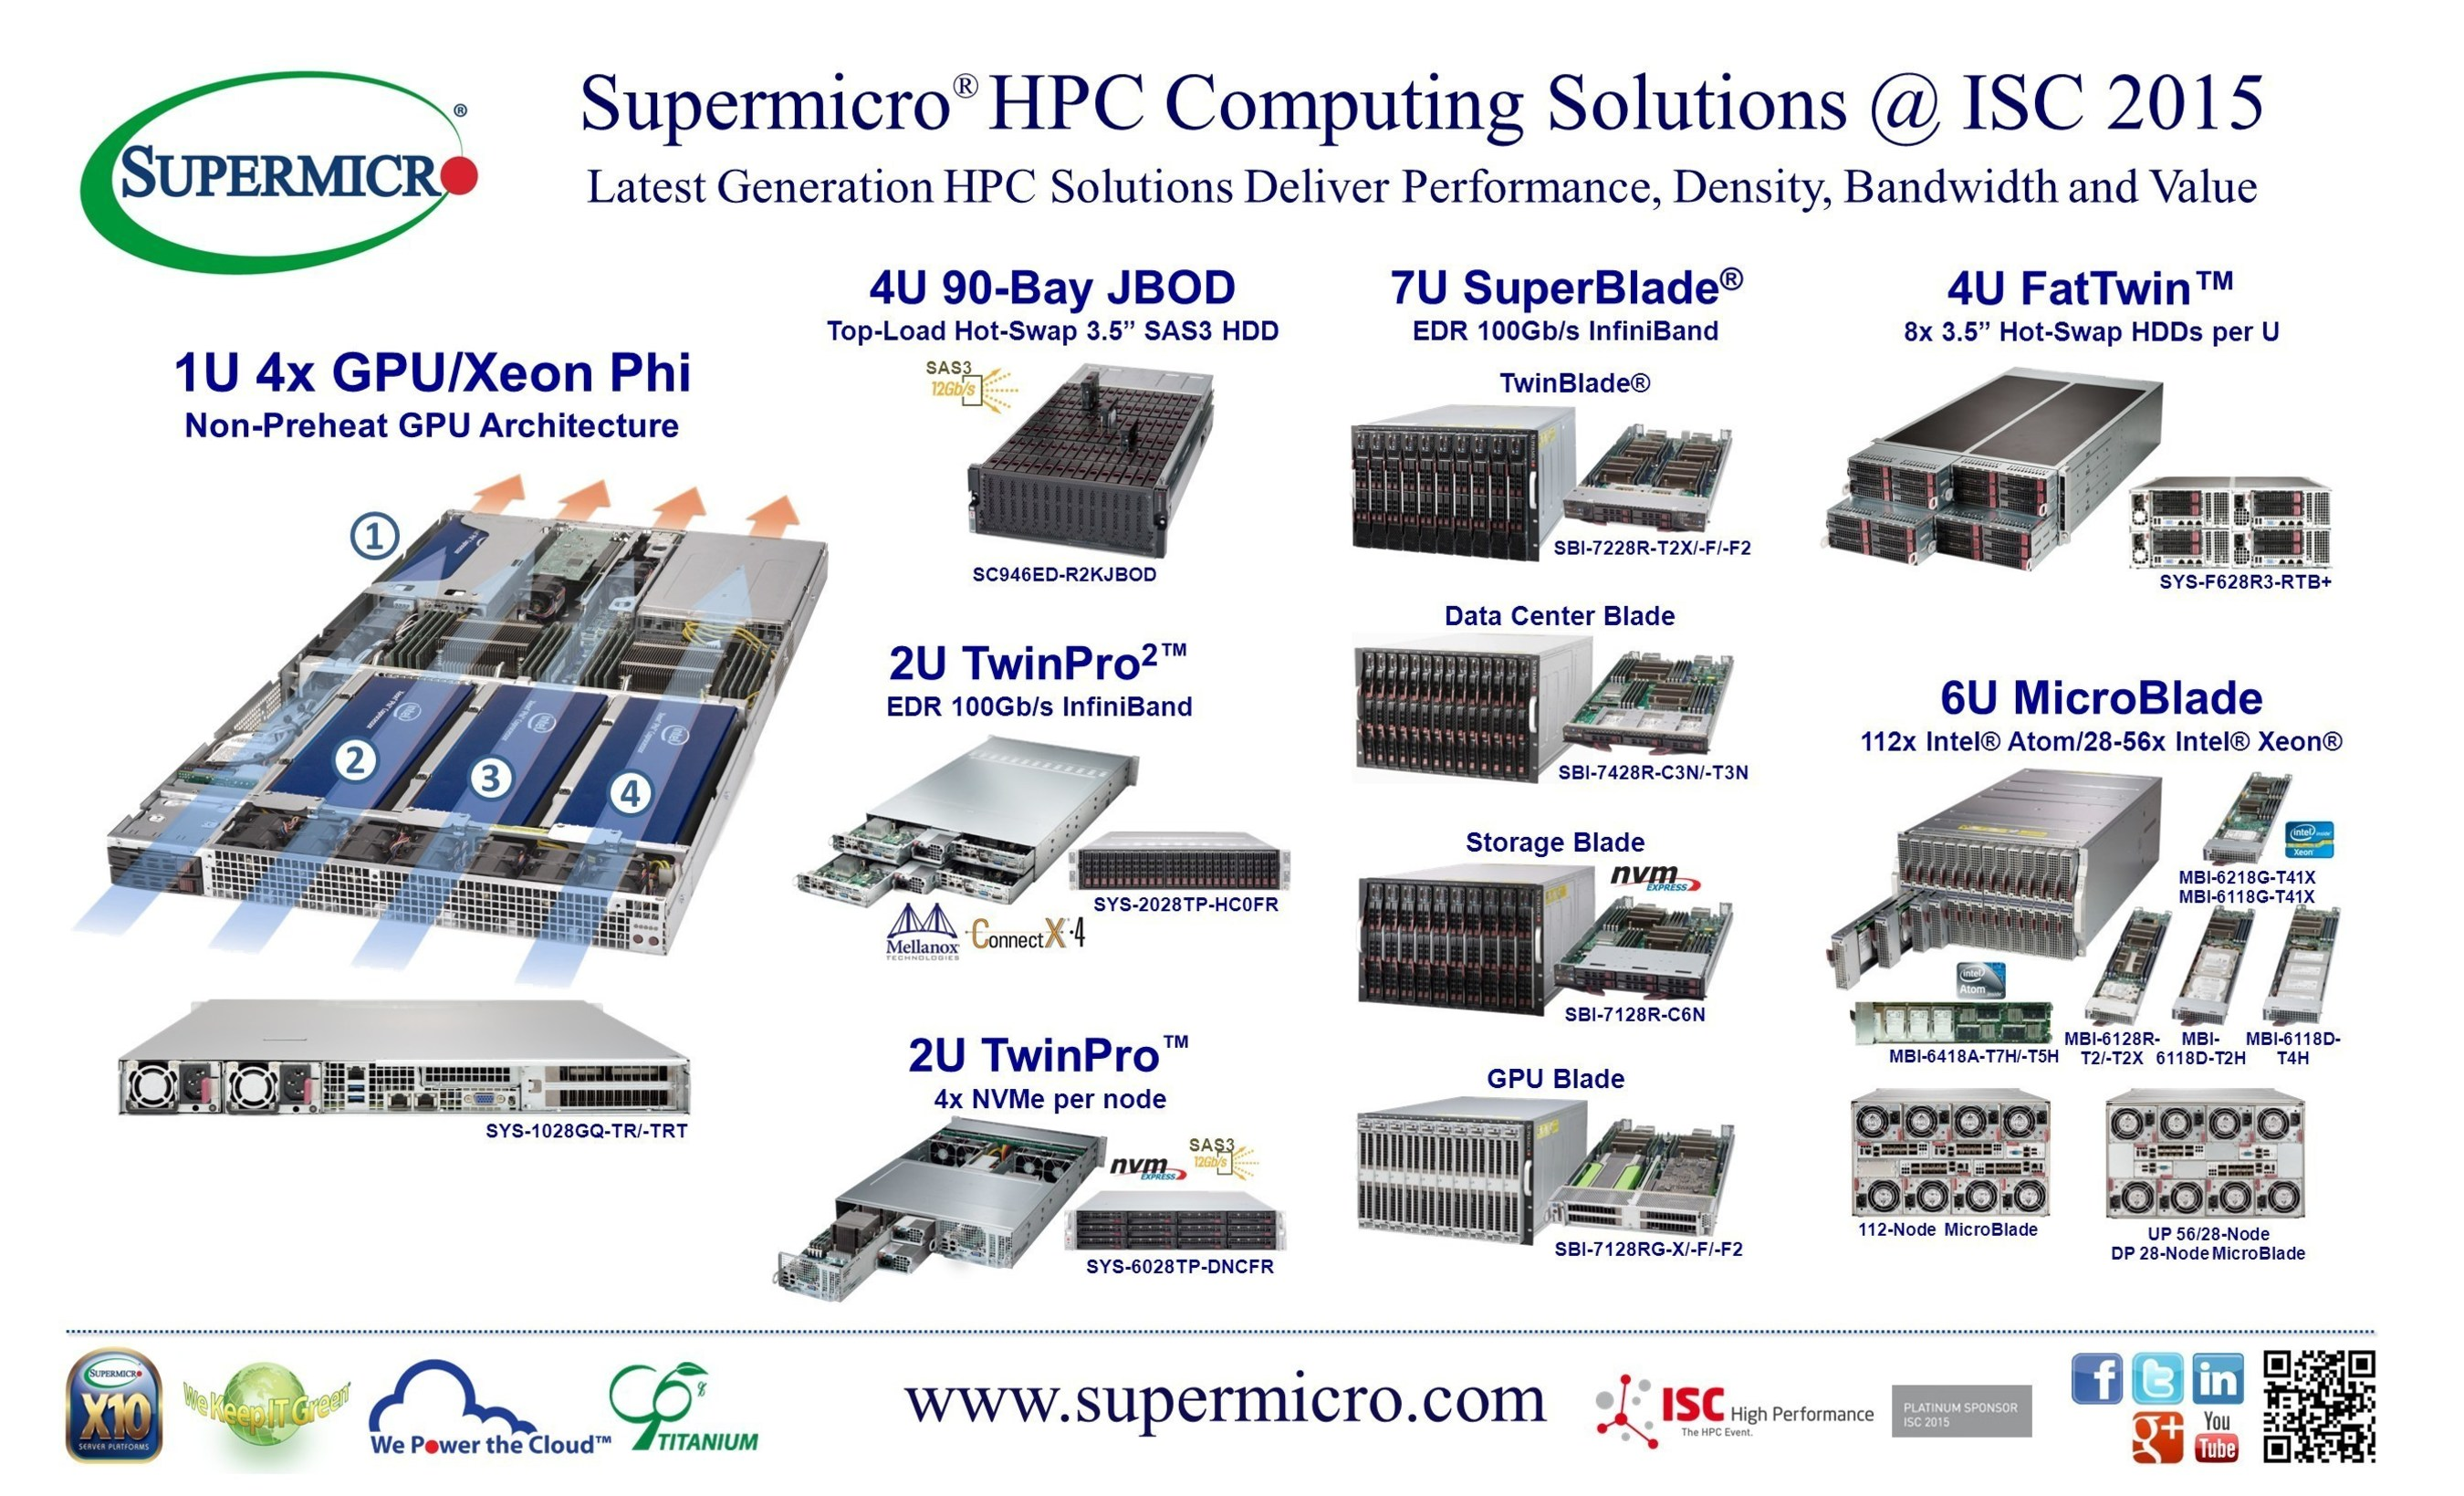 Supermicro' Exhibits 1U 4x GPU/Xeon Phi SuperServer' and High Bandwidth 2U TwinPro''', 7U SuperBlade' Servers Featuring EDR 100Gb/s InfiniBand at ISC 2015